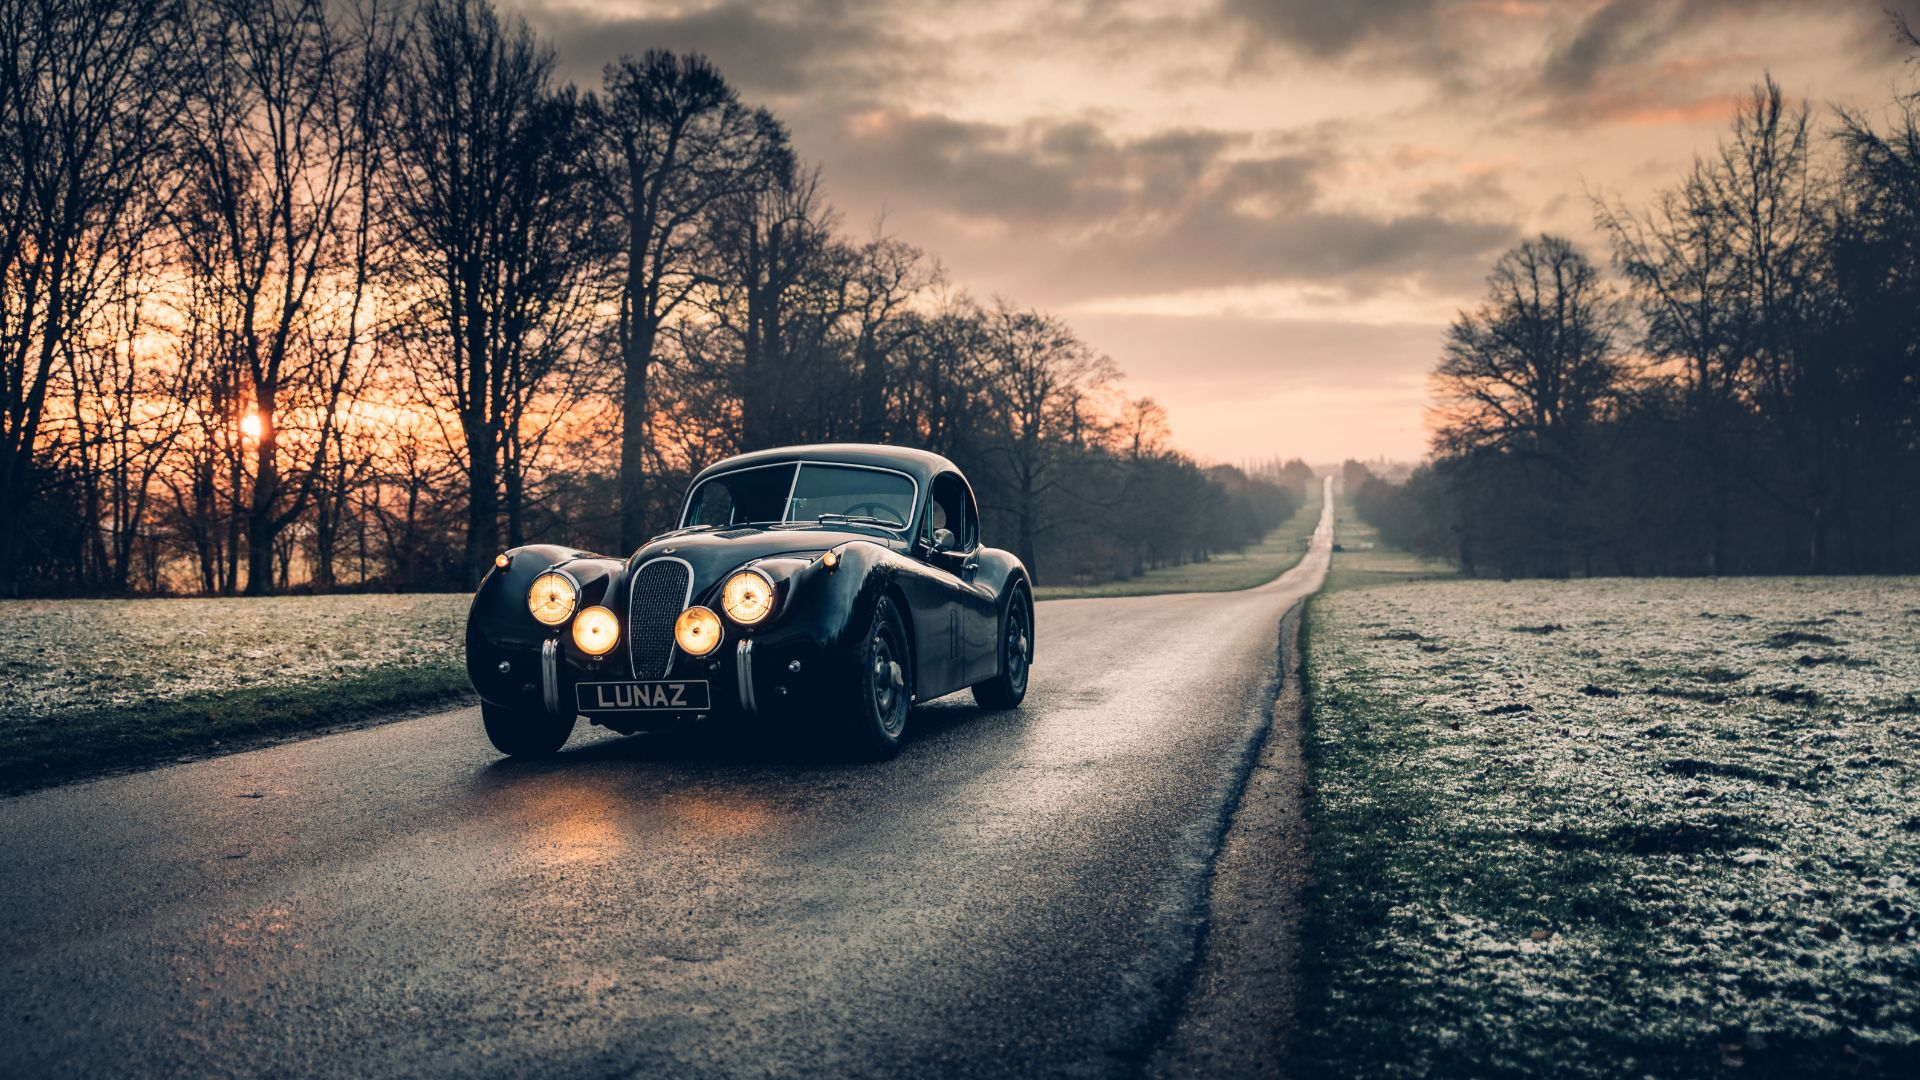 Classic cars converted to electric 'are not historic'